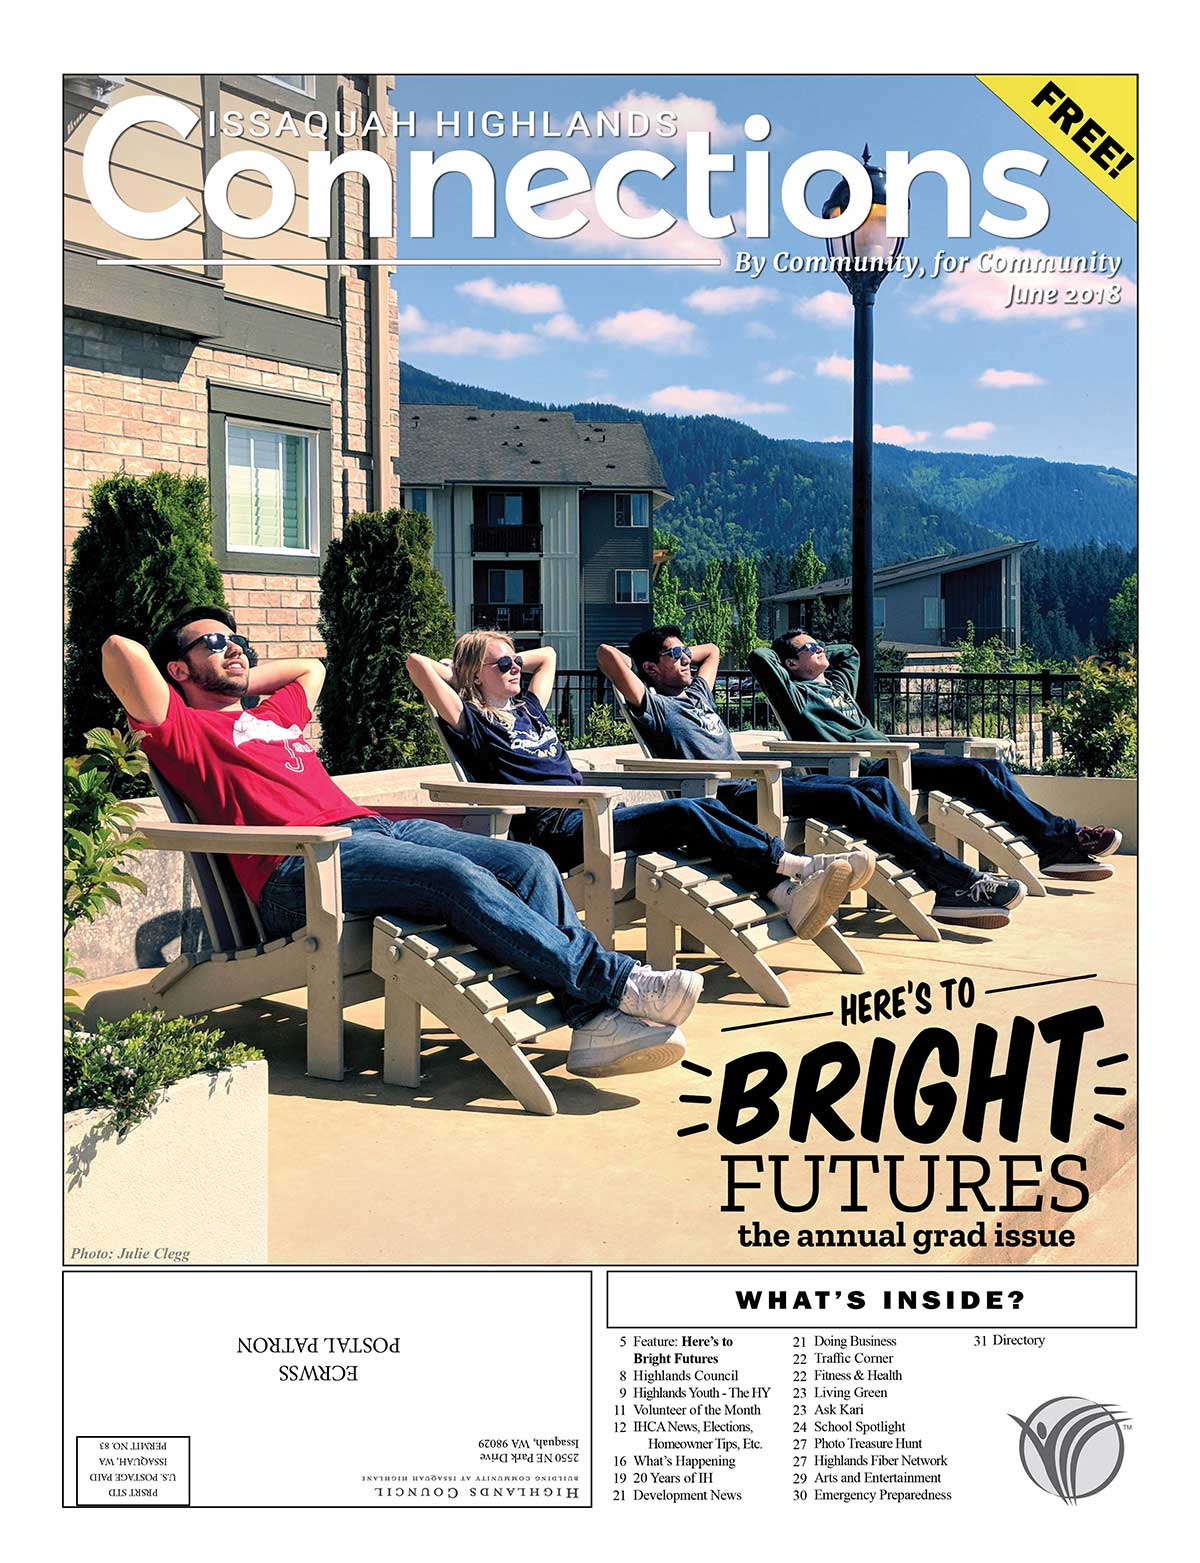 June 2018 Connections Issaquah Highlands Cover